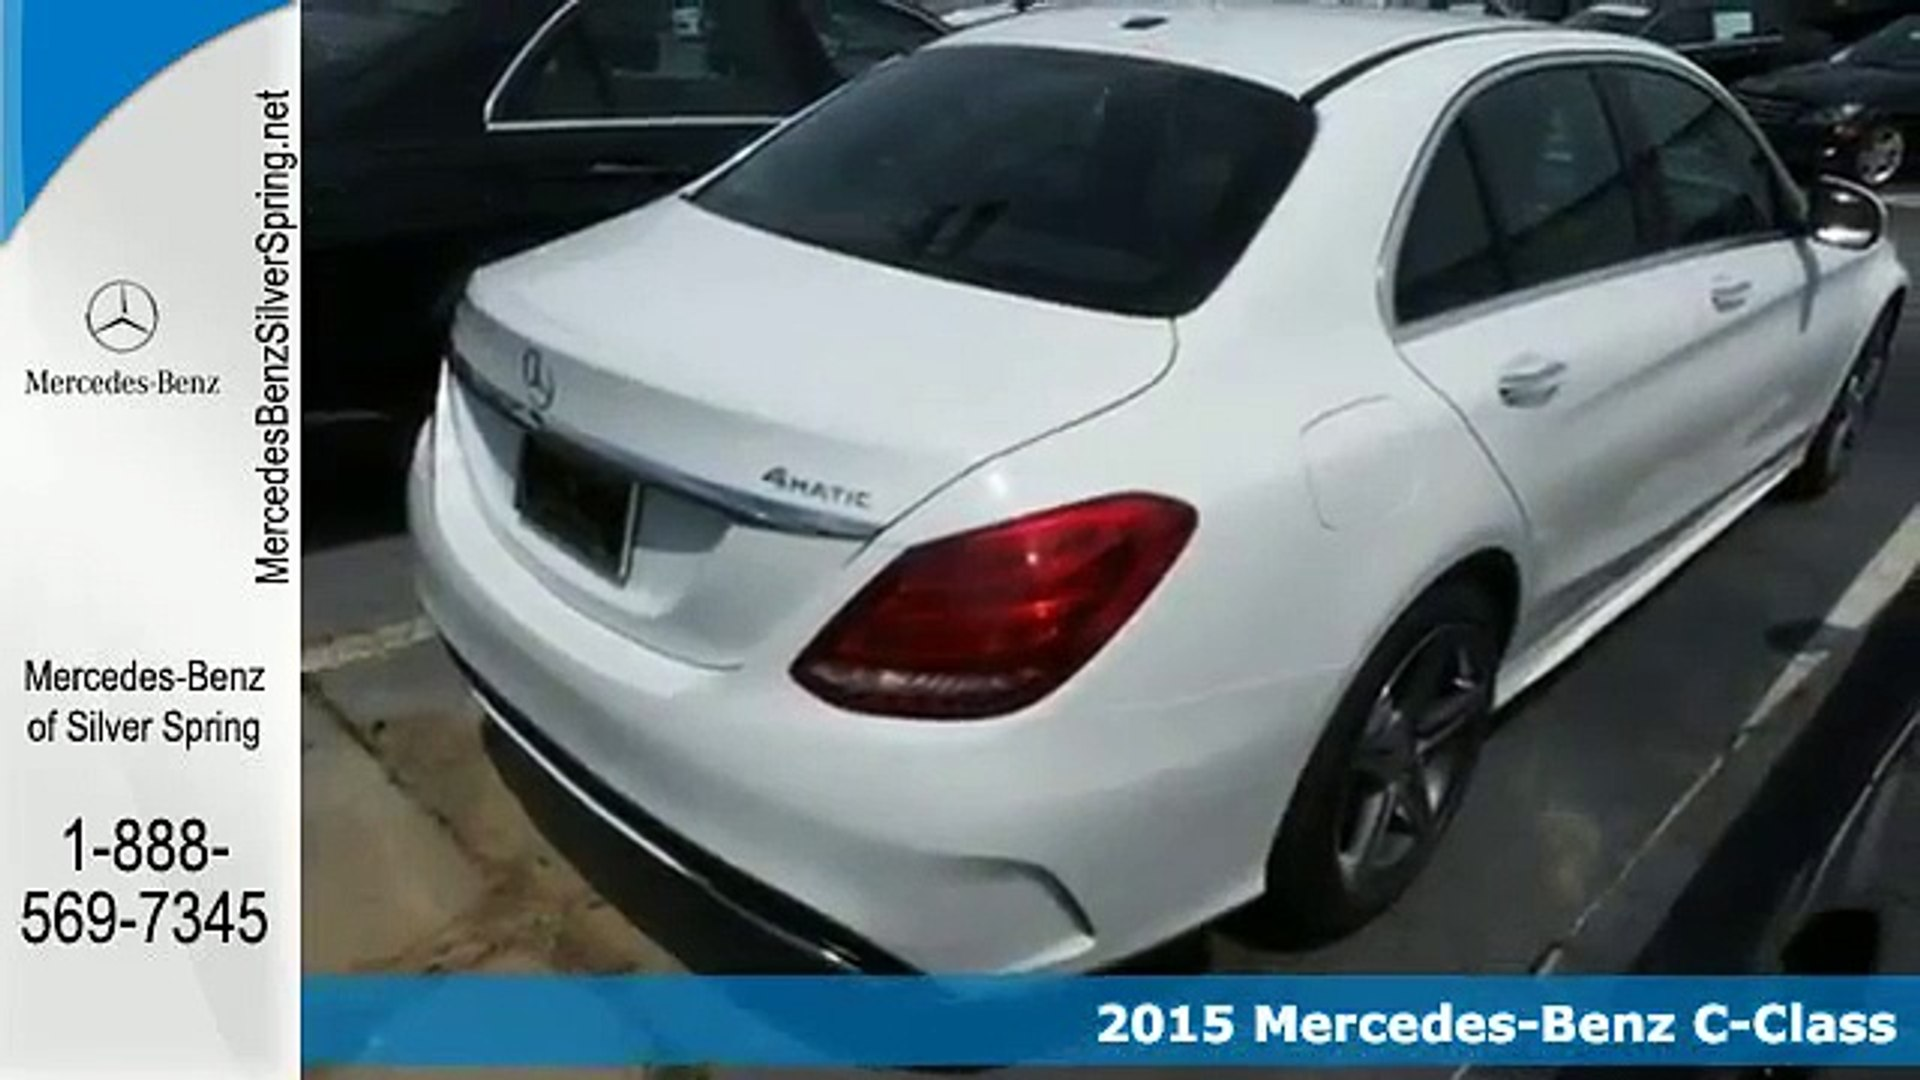 Mercedes Benz Of Silver Spring >> Used 2015 Mercedes Benz C Class Silver Spring